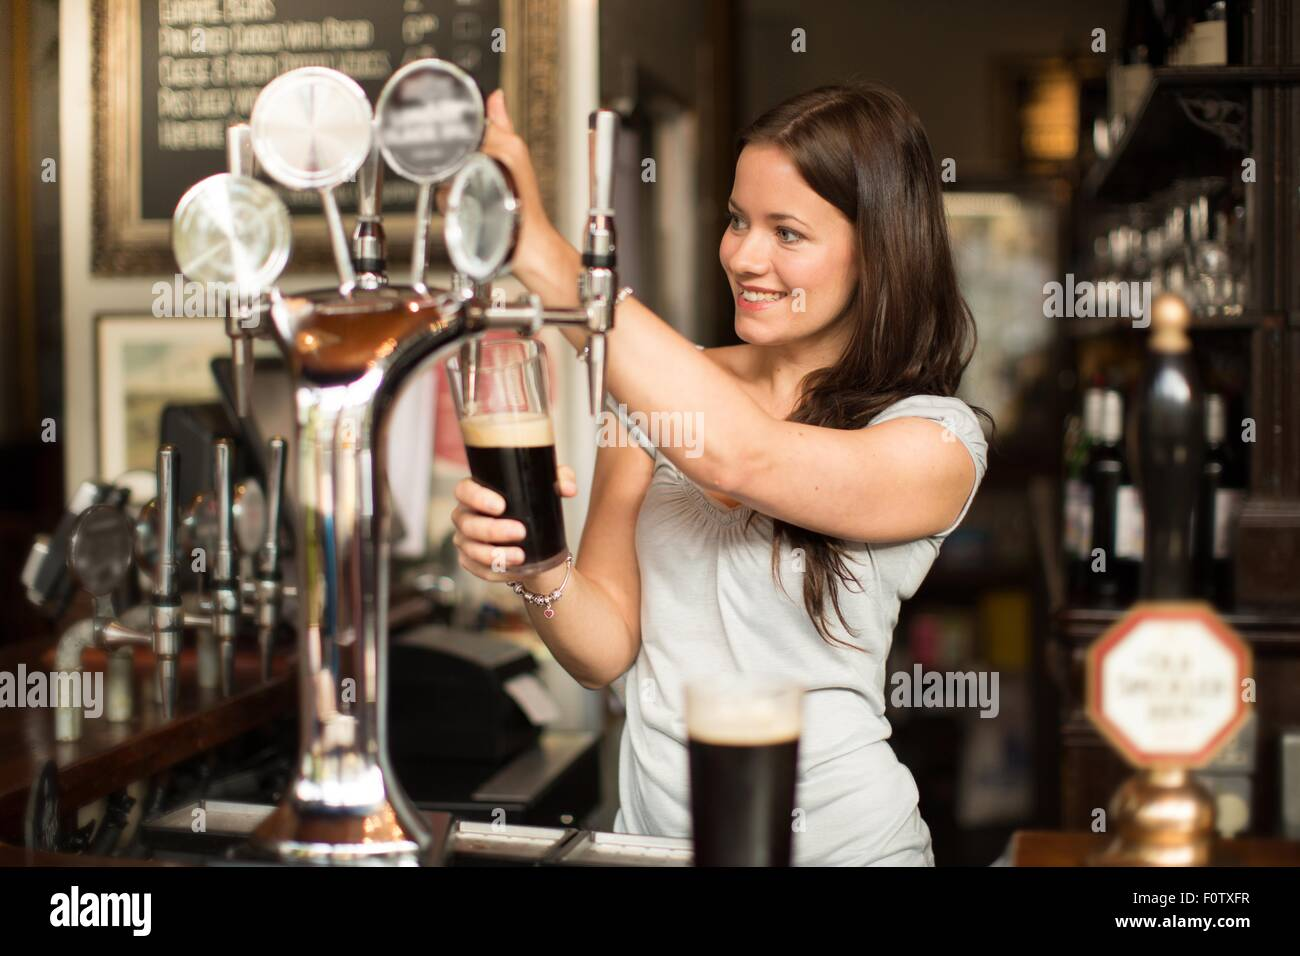 Mid adult woman working in public house, serving drinks - Stock Image